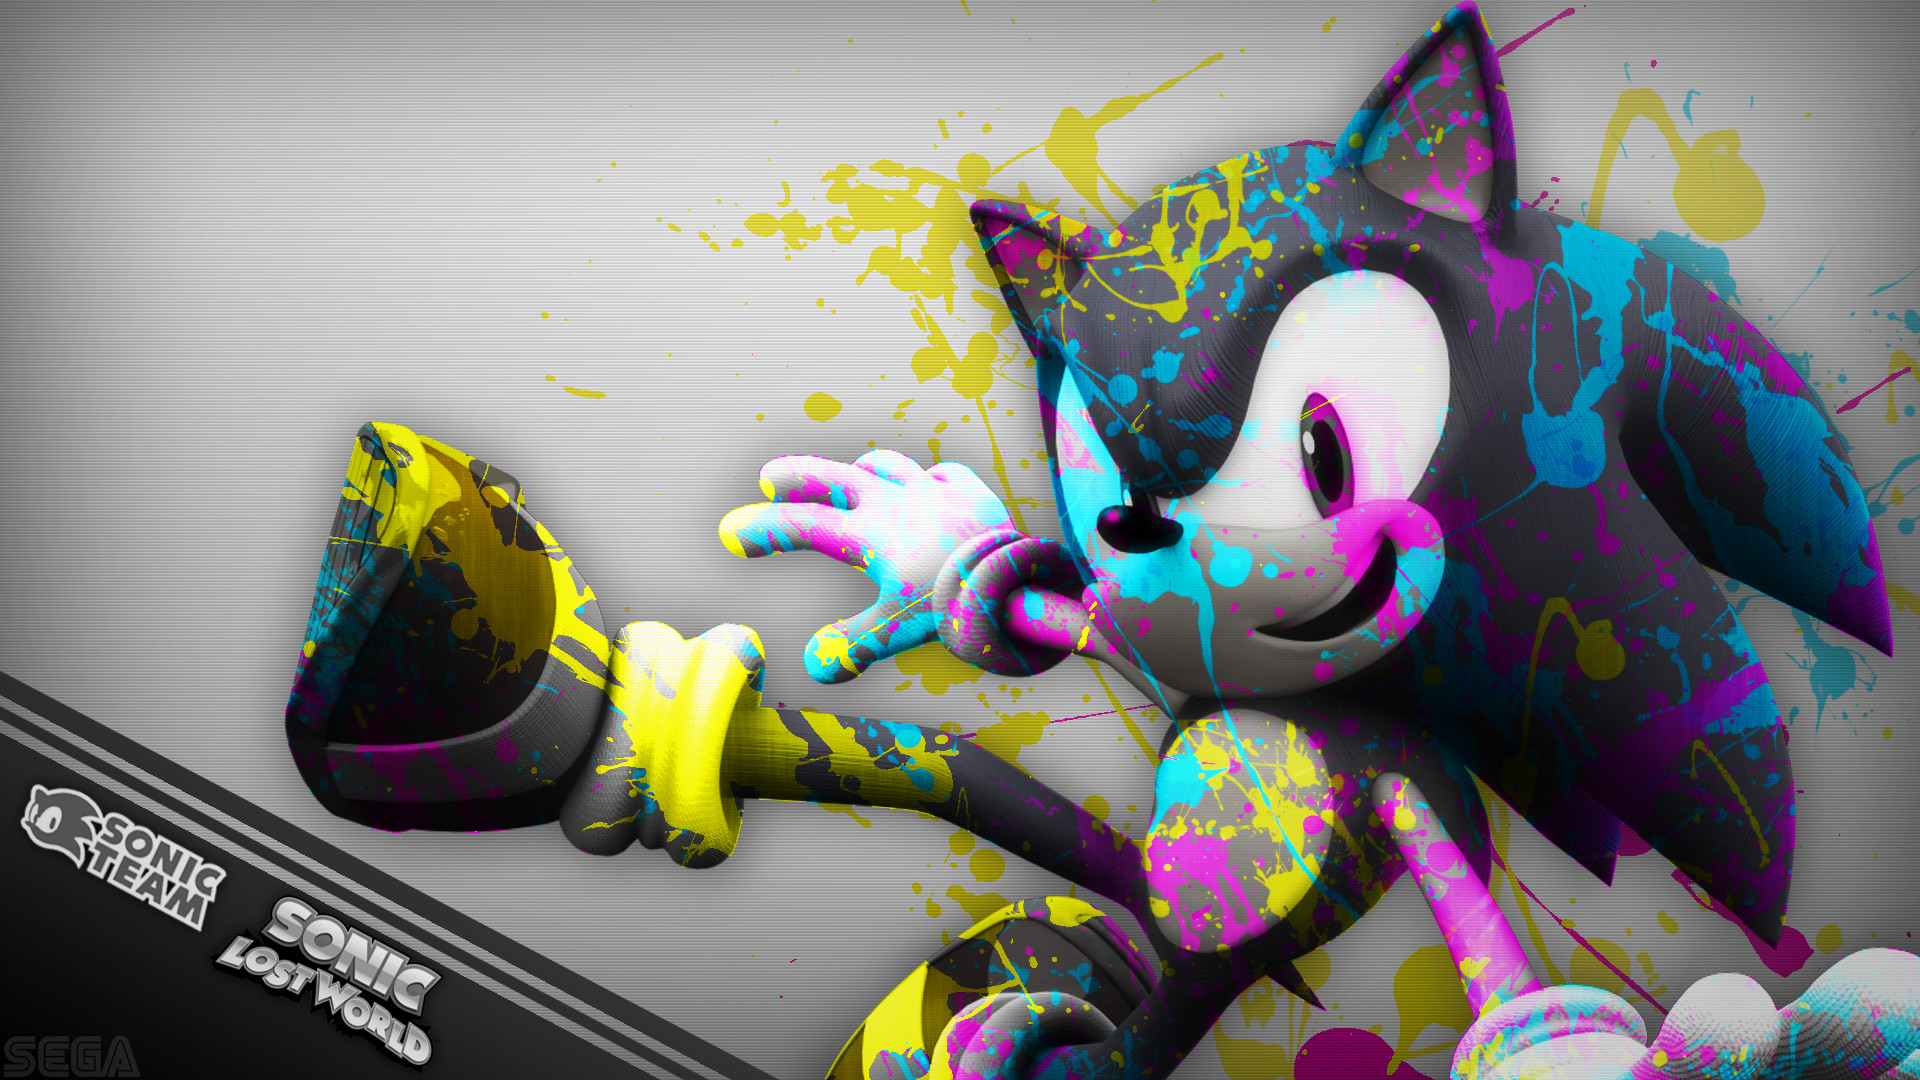 … Adorable Sonic Lost World Wallpaper, 5424500 px …